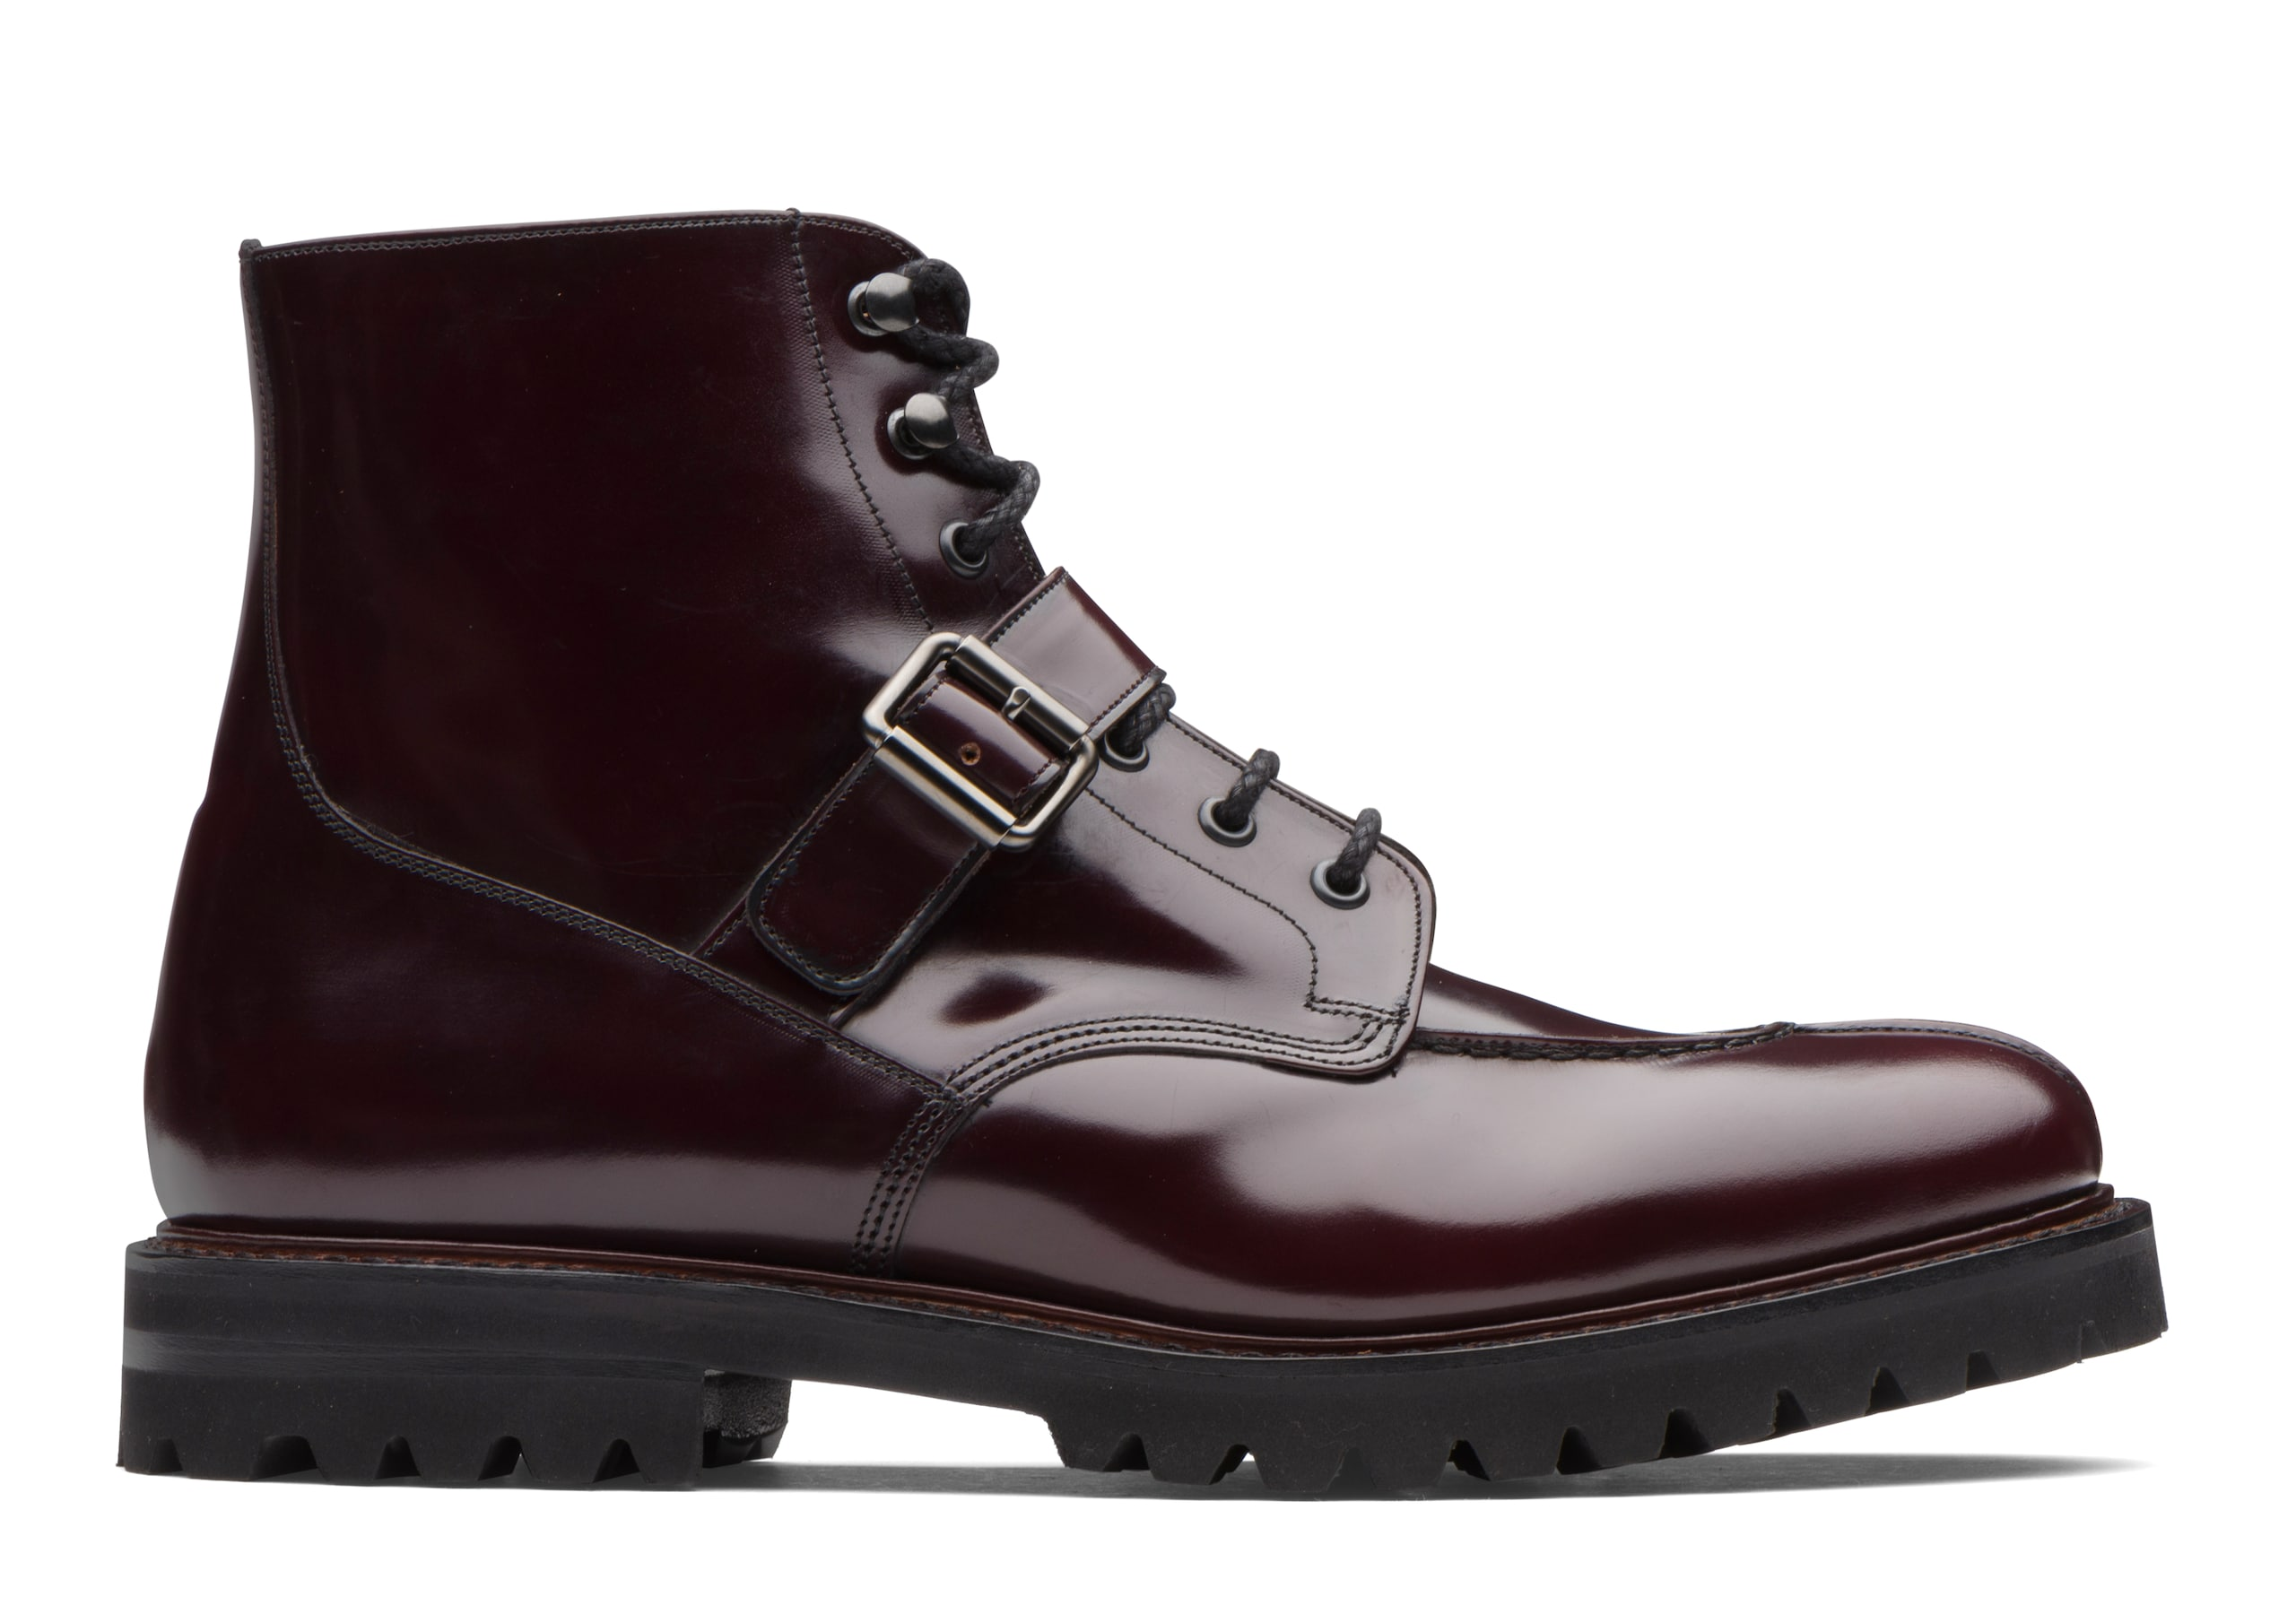 Edford Church's Polished Binder Lace-Up Derby Boot Burgundy